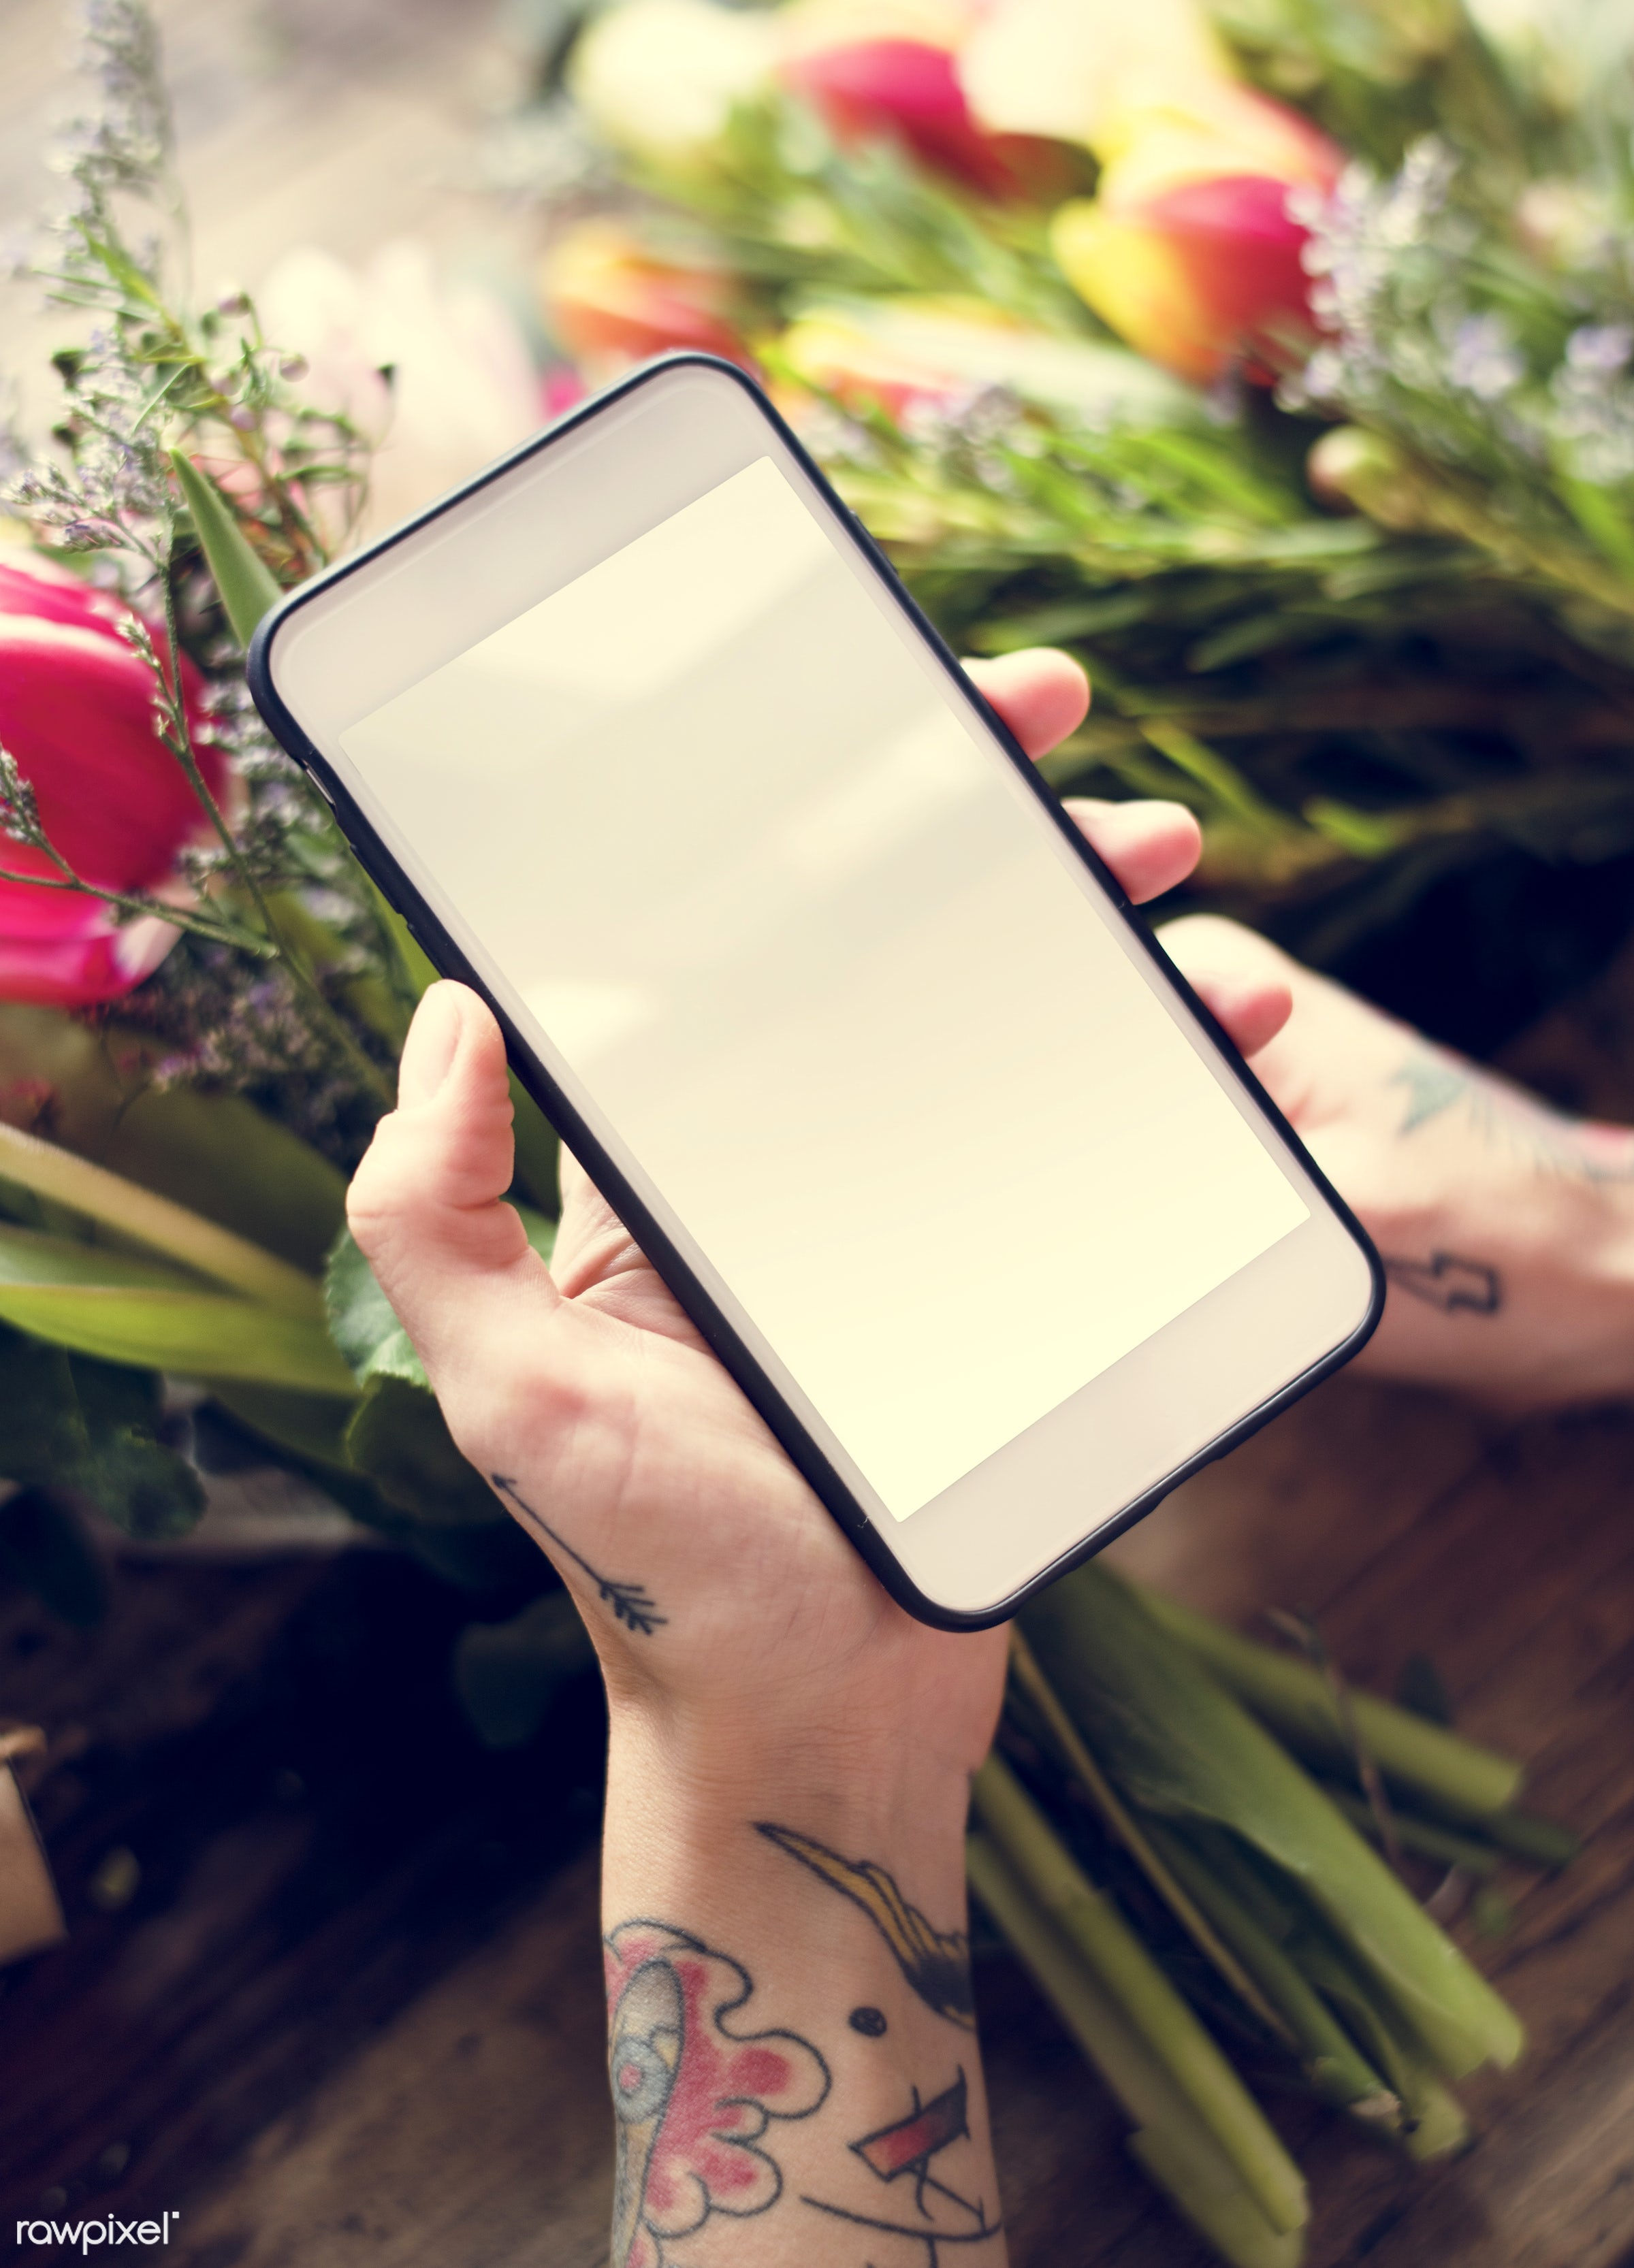 using, person, phone, technology, holding, snap, show, people, decor, nature, capture, empty, tattoo, flowers, screen, hold...